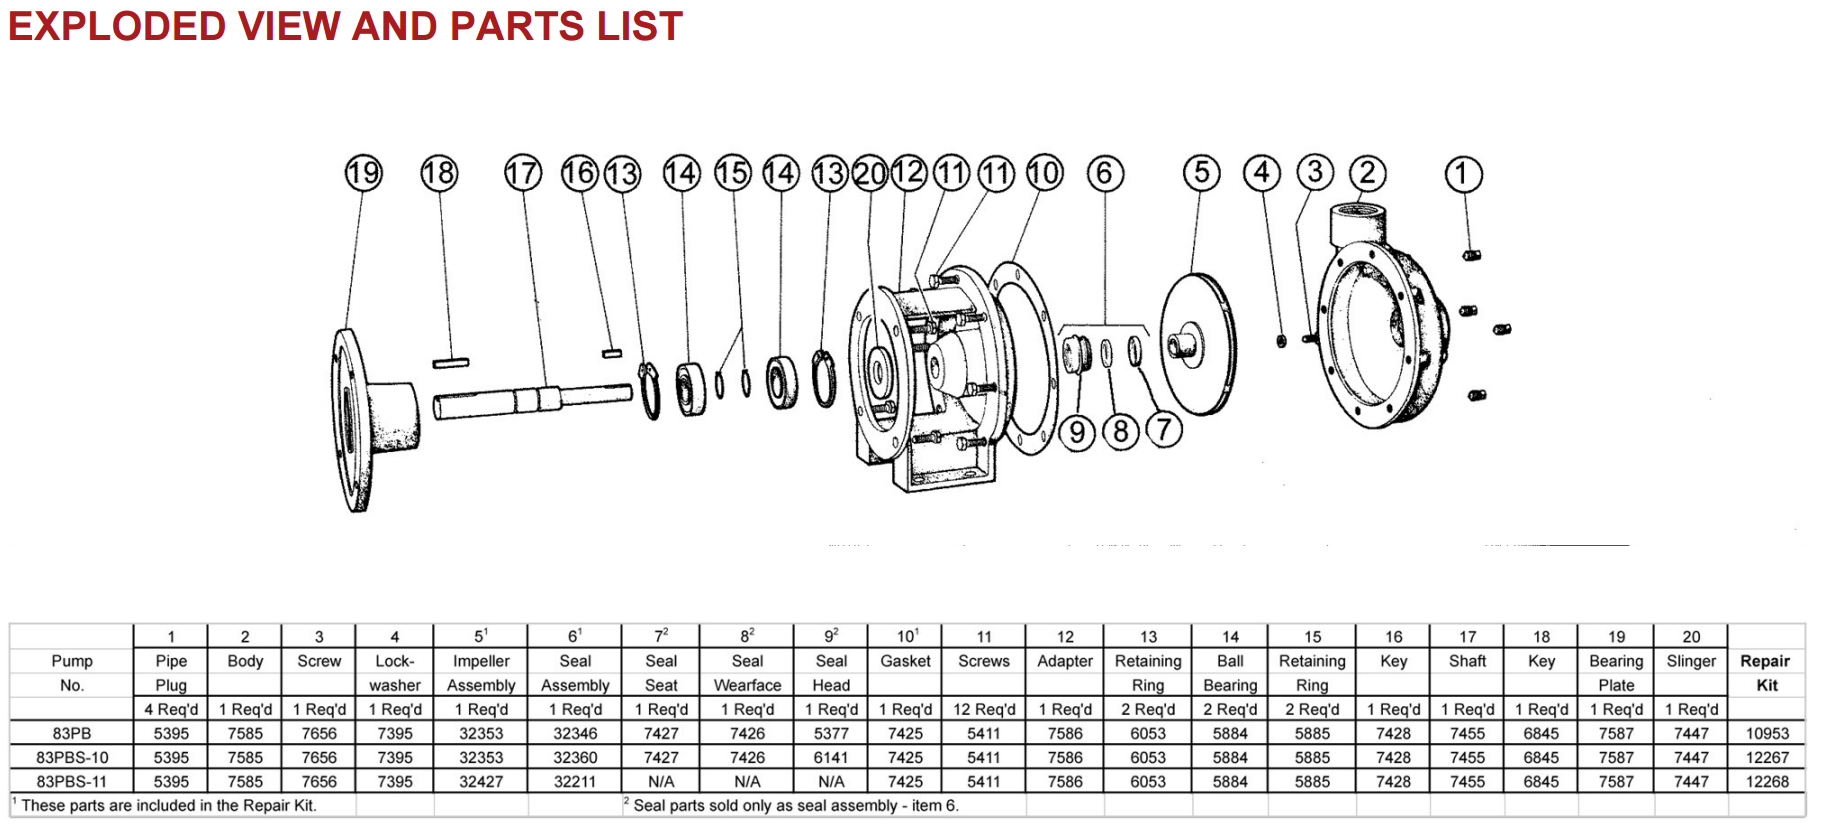 Oberdorfer 83PB Exploded view and parts list